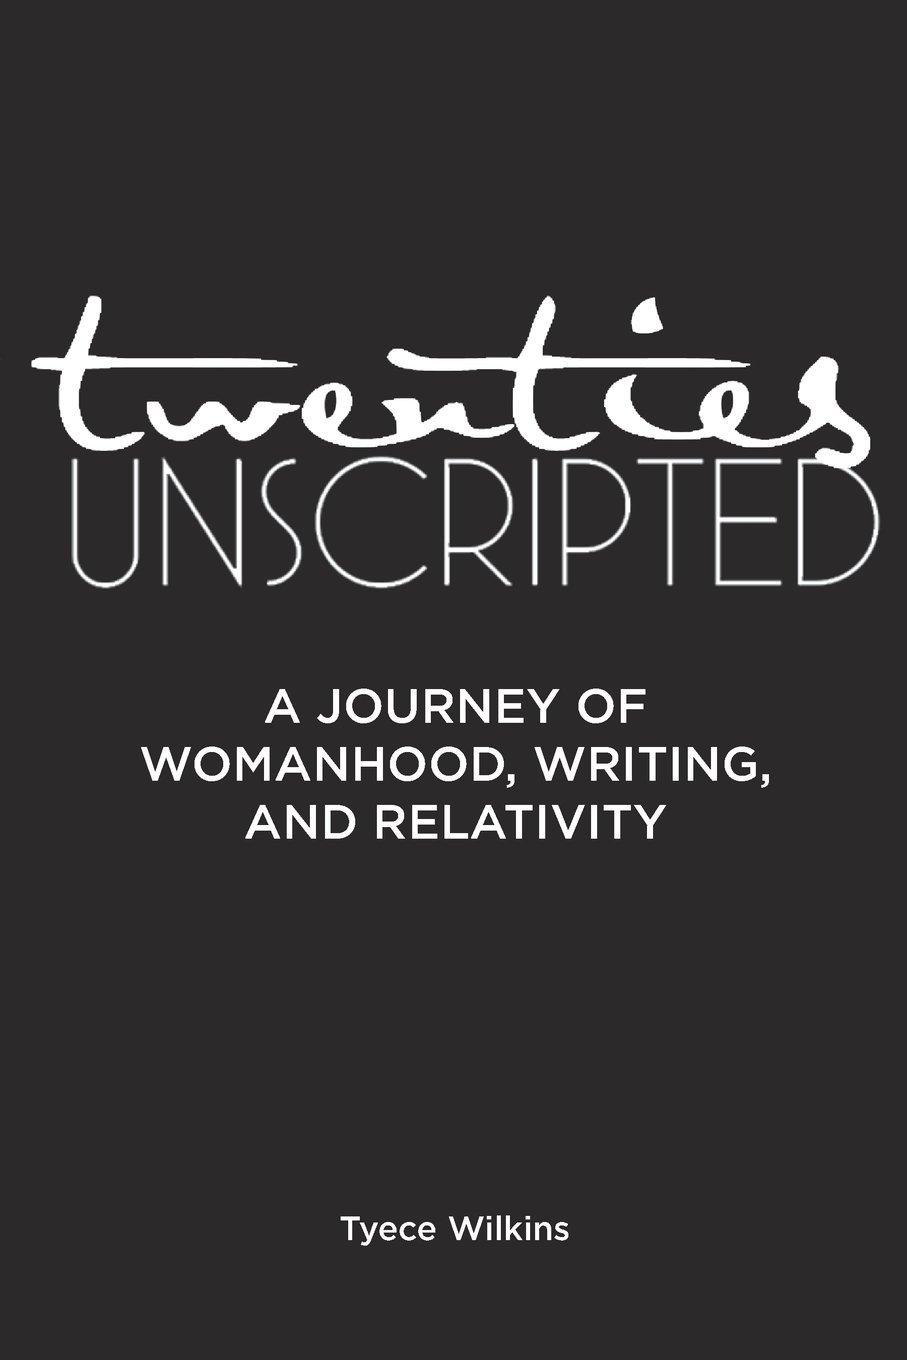 Twenties Unscripted: A Journey of Womanhood, Writing and Relativity Tyece Wilkins